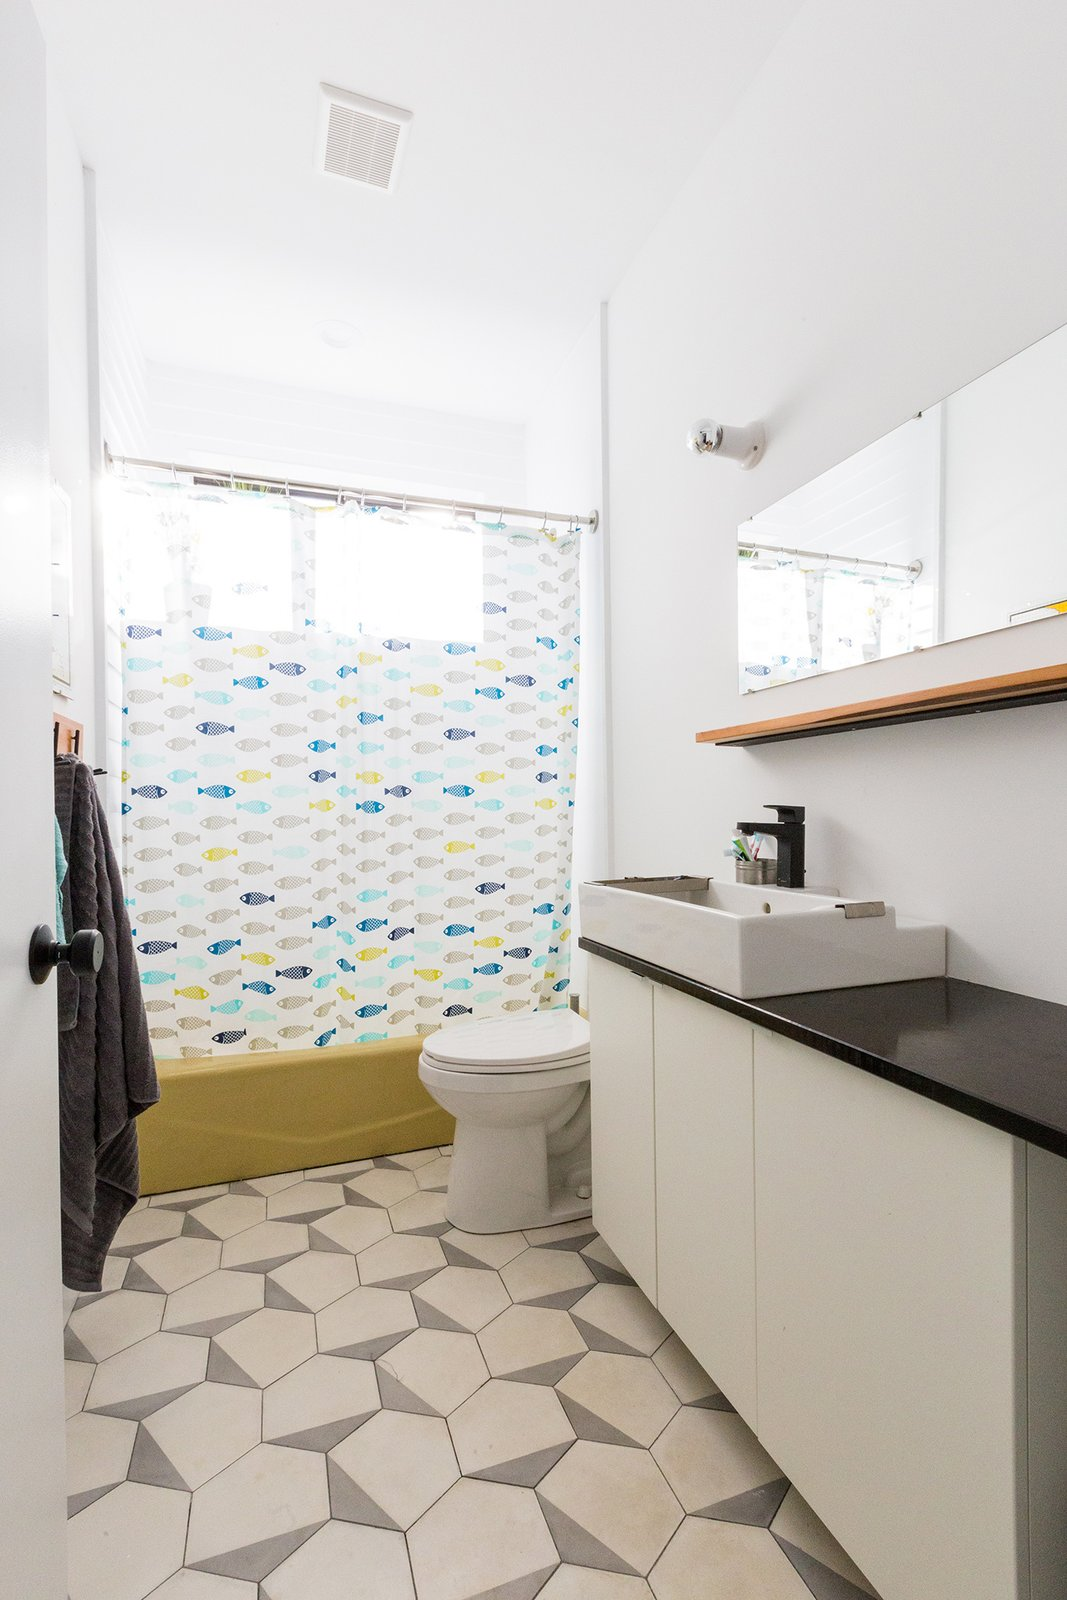 Bathrooms include cement tile by Cle, and salvaged tubs from a local building material re-sale store.  Tagged: Bath Room, Vessel Sink, Wood Counter, Drop In Tub, Ceramic Tile Floor, and Wall Lighting.  Dorgenois by Emilie Taylor Welty